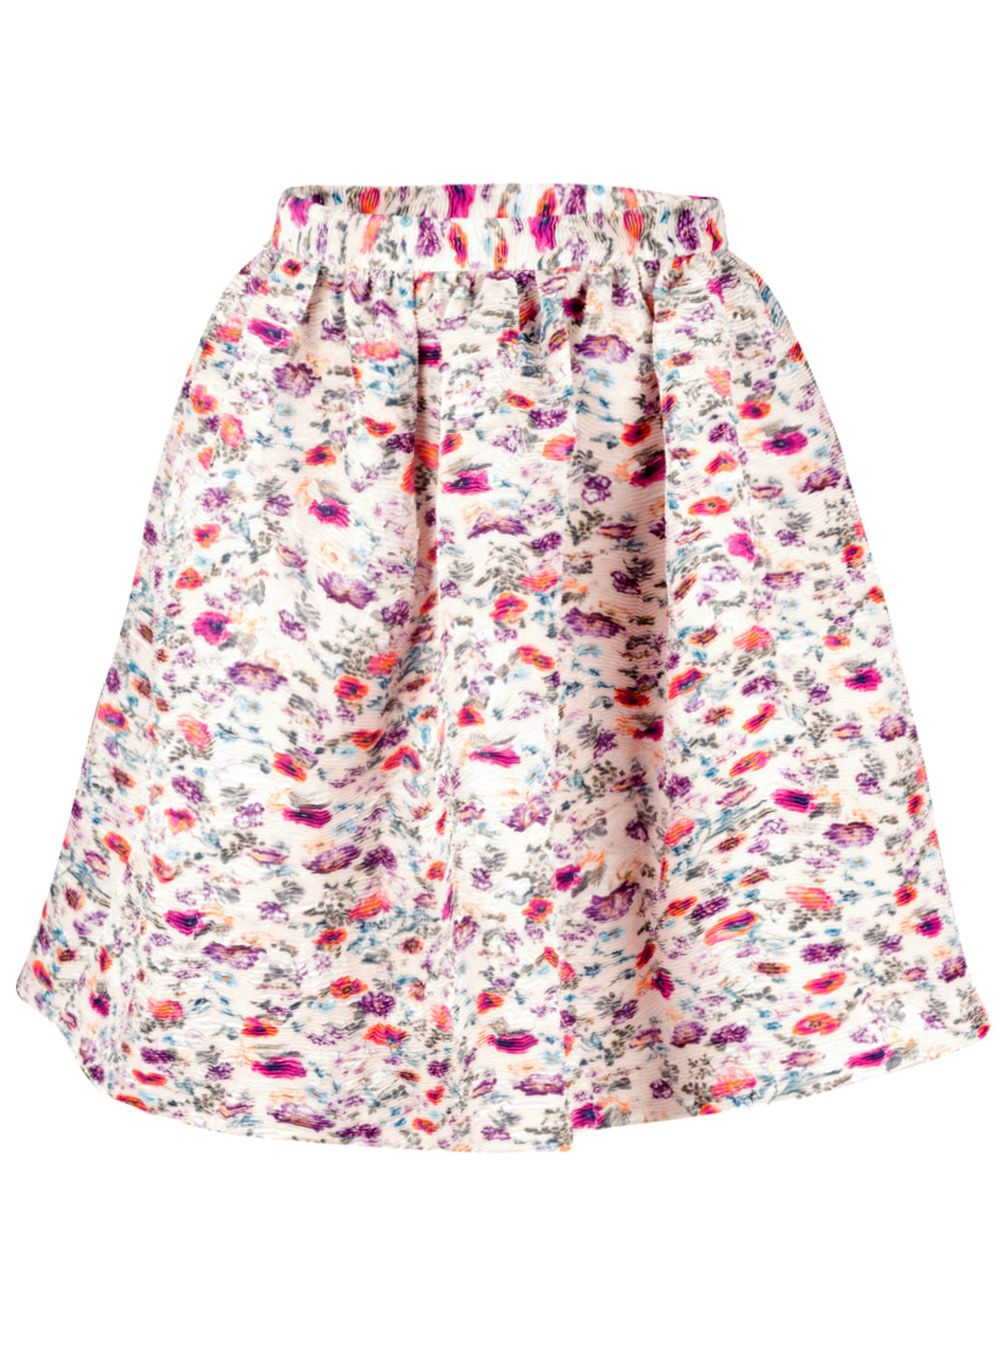 Crinkled Floral Skirt by: MSGM